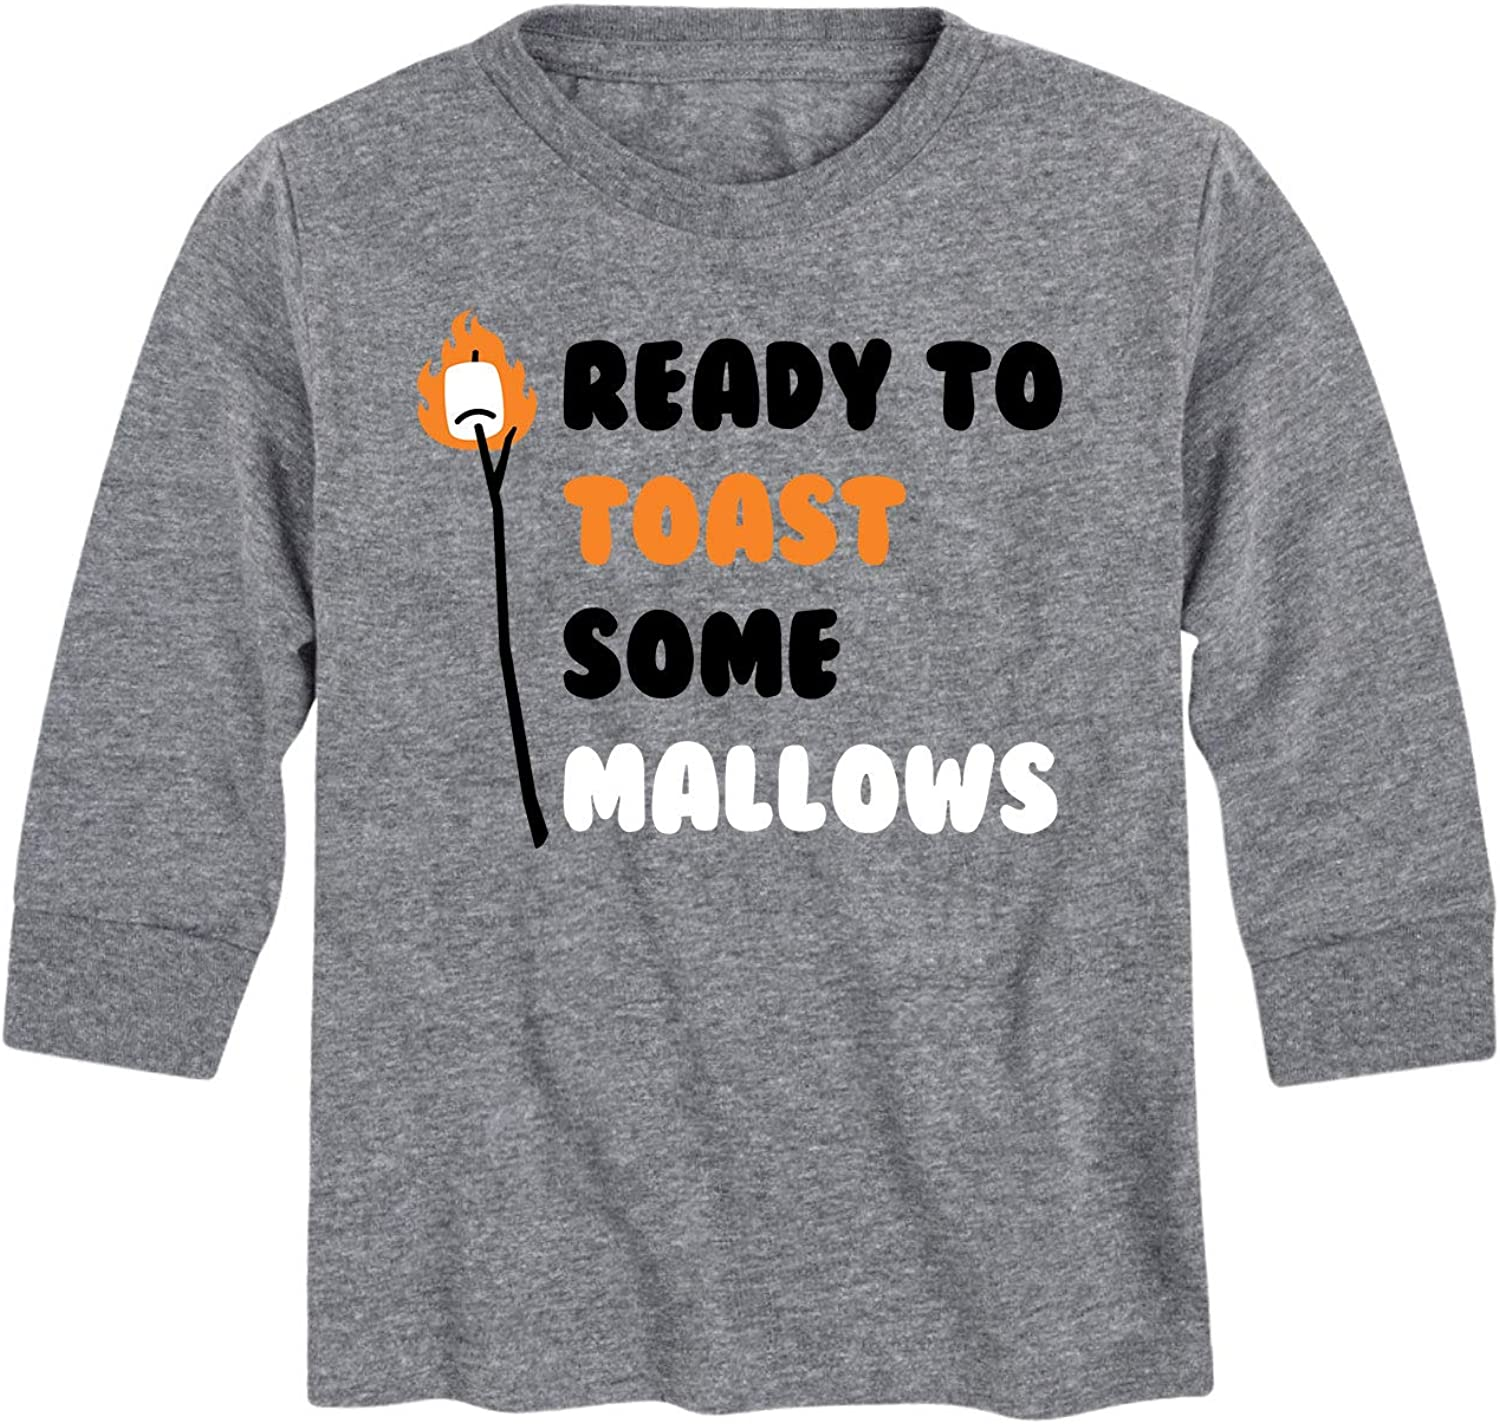 Instant Message Ready to Toast Some Mallows - Kids Long Sleeve Tee